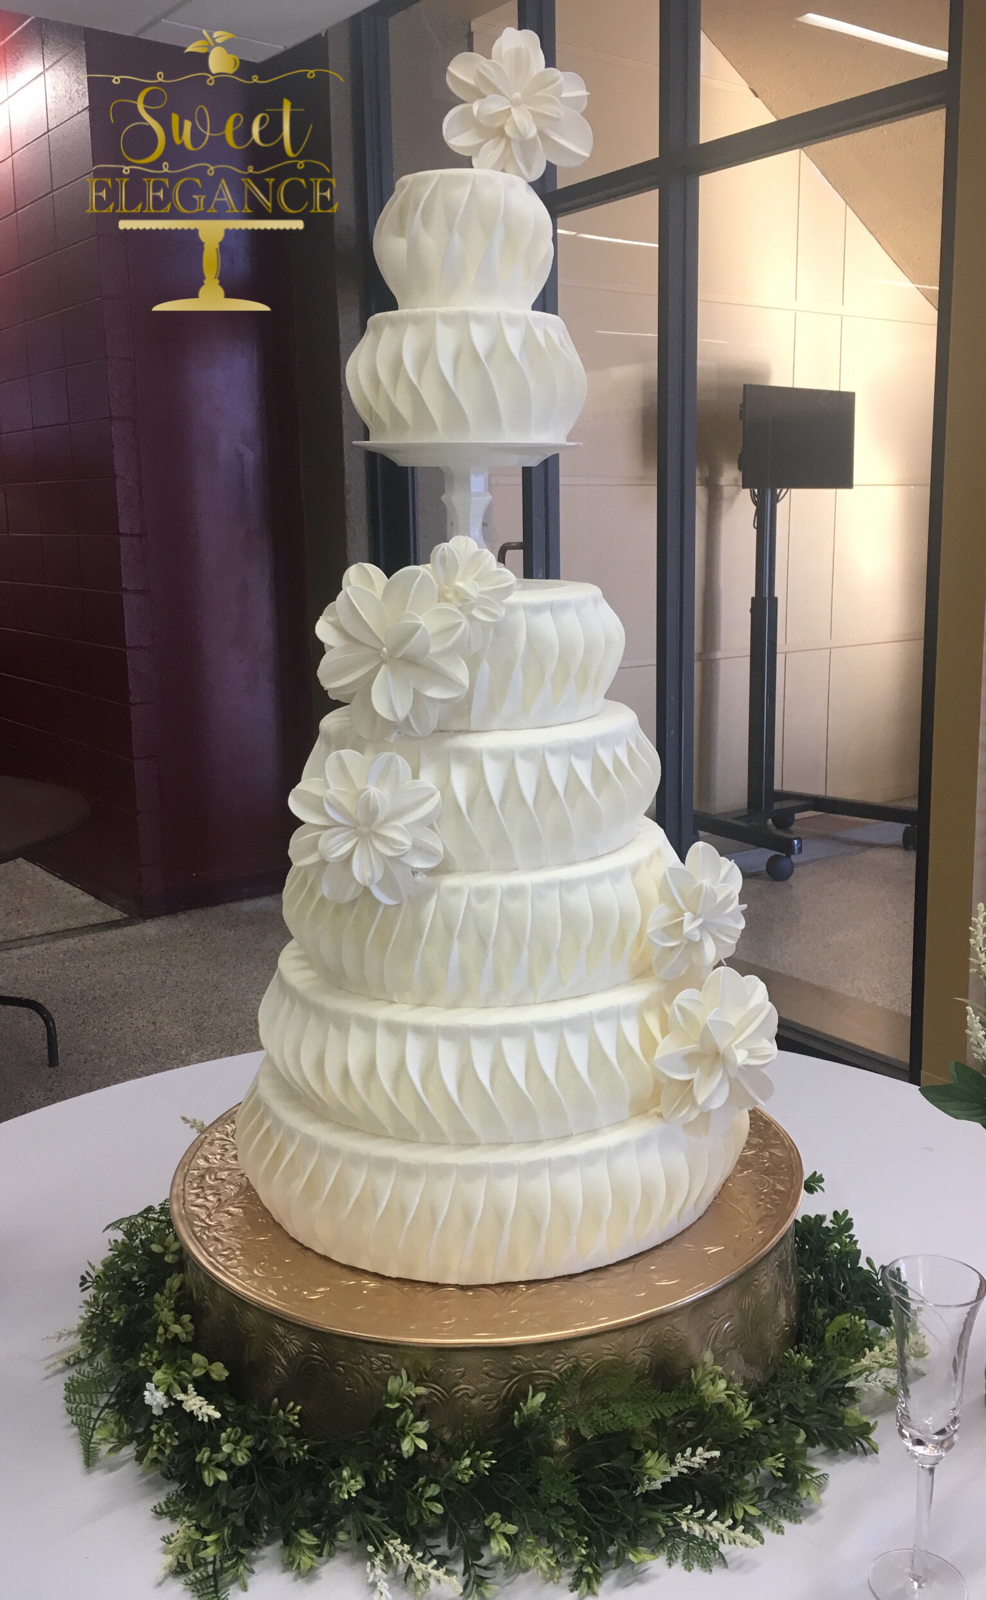 Grand, All White Textured Wedding Cake With Modern Handmade Sugar Flowers  By Sweet Elegance Located